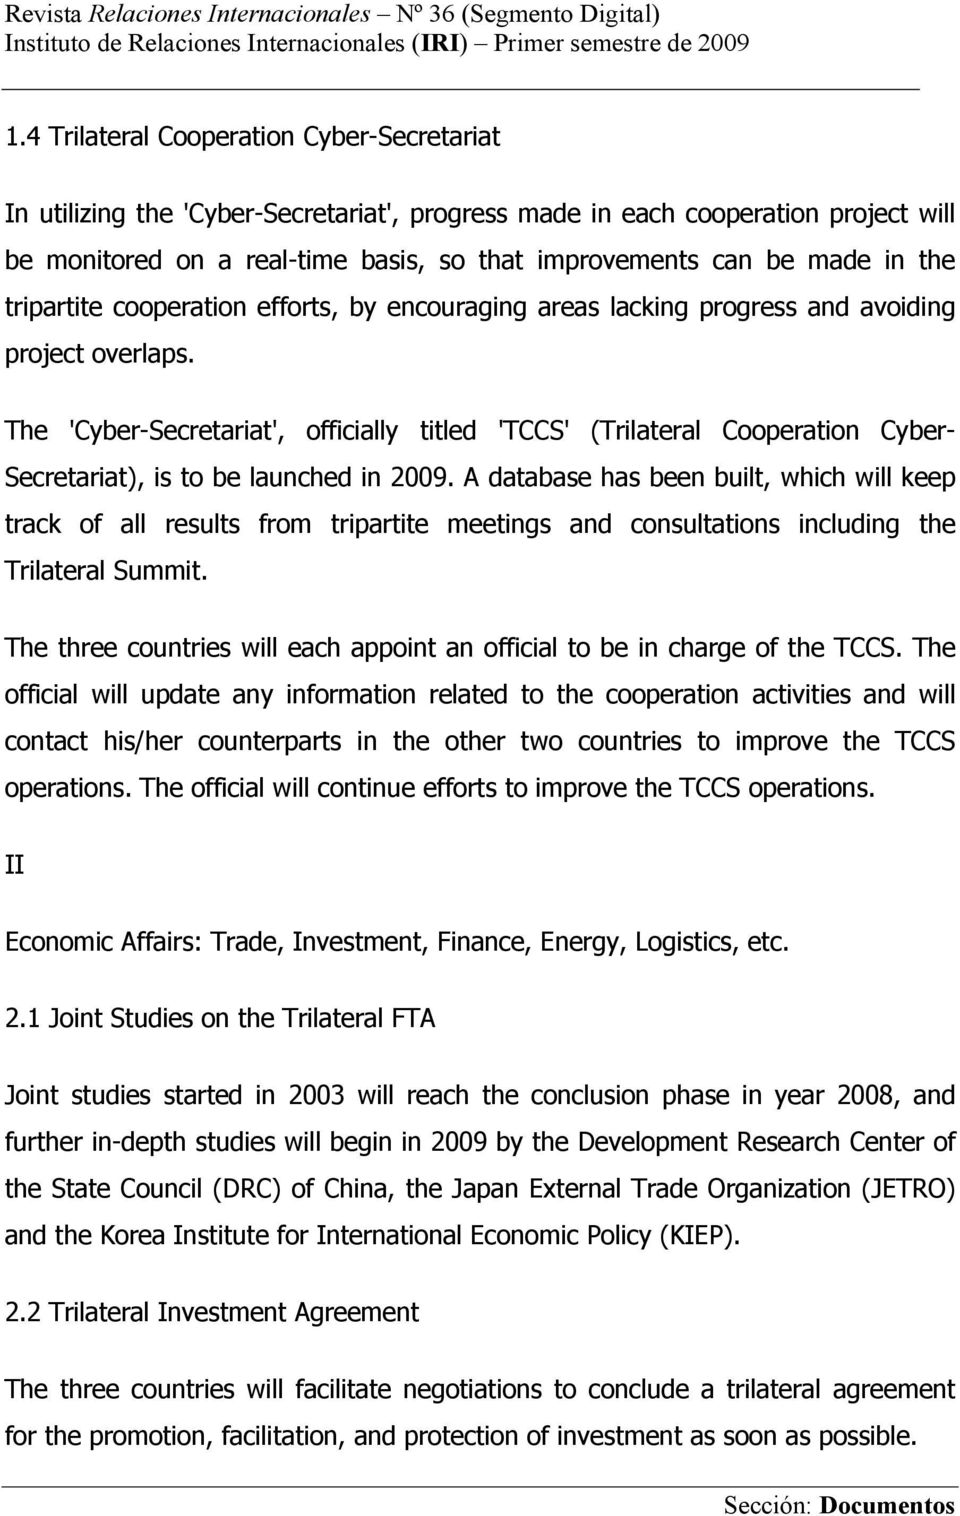 The 'Cyber-Secretariat', officially titled 'TCCS' (Trilateral Cooperation Cyber- Secretariat), is to be launched in 2009.